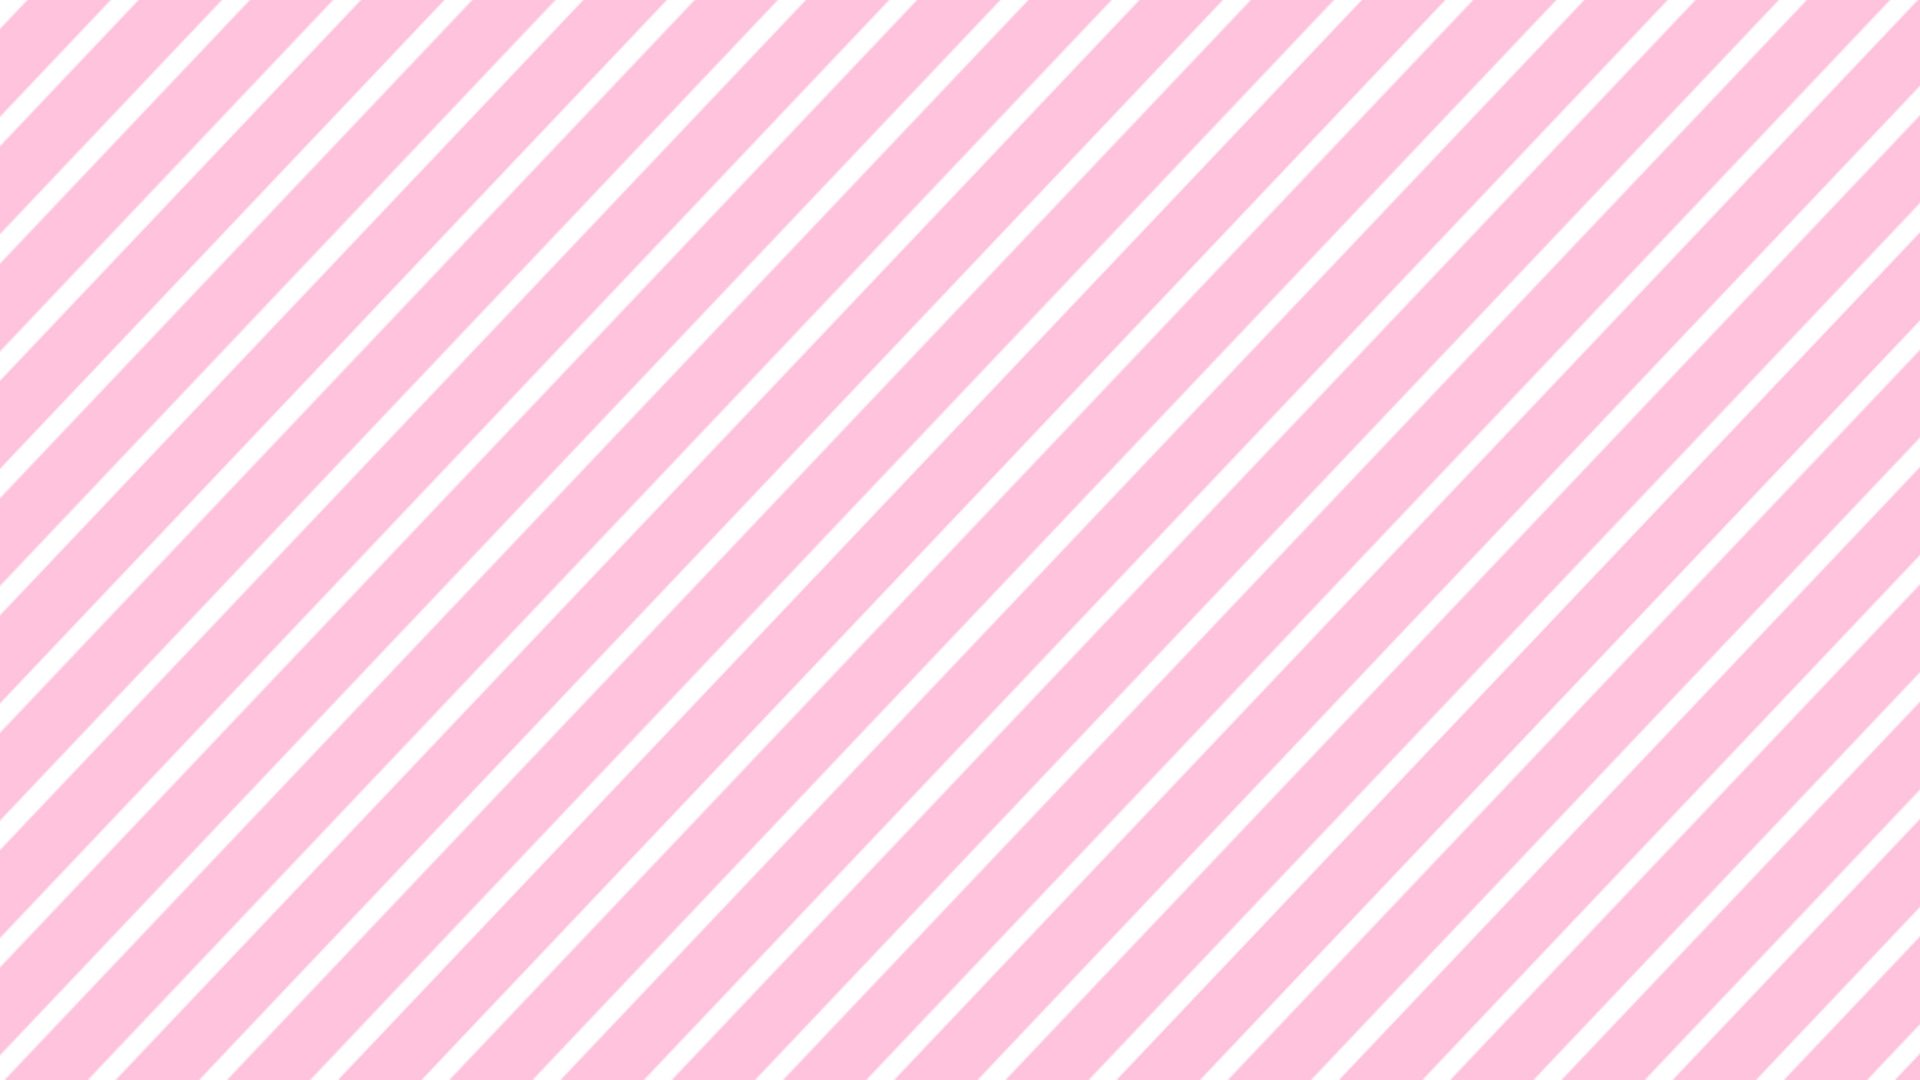 White Stripes On Pink Background Hd Wallpaper Background Image